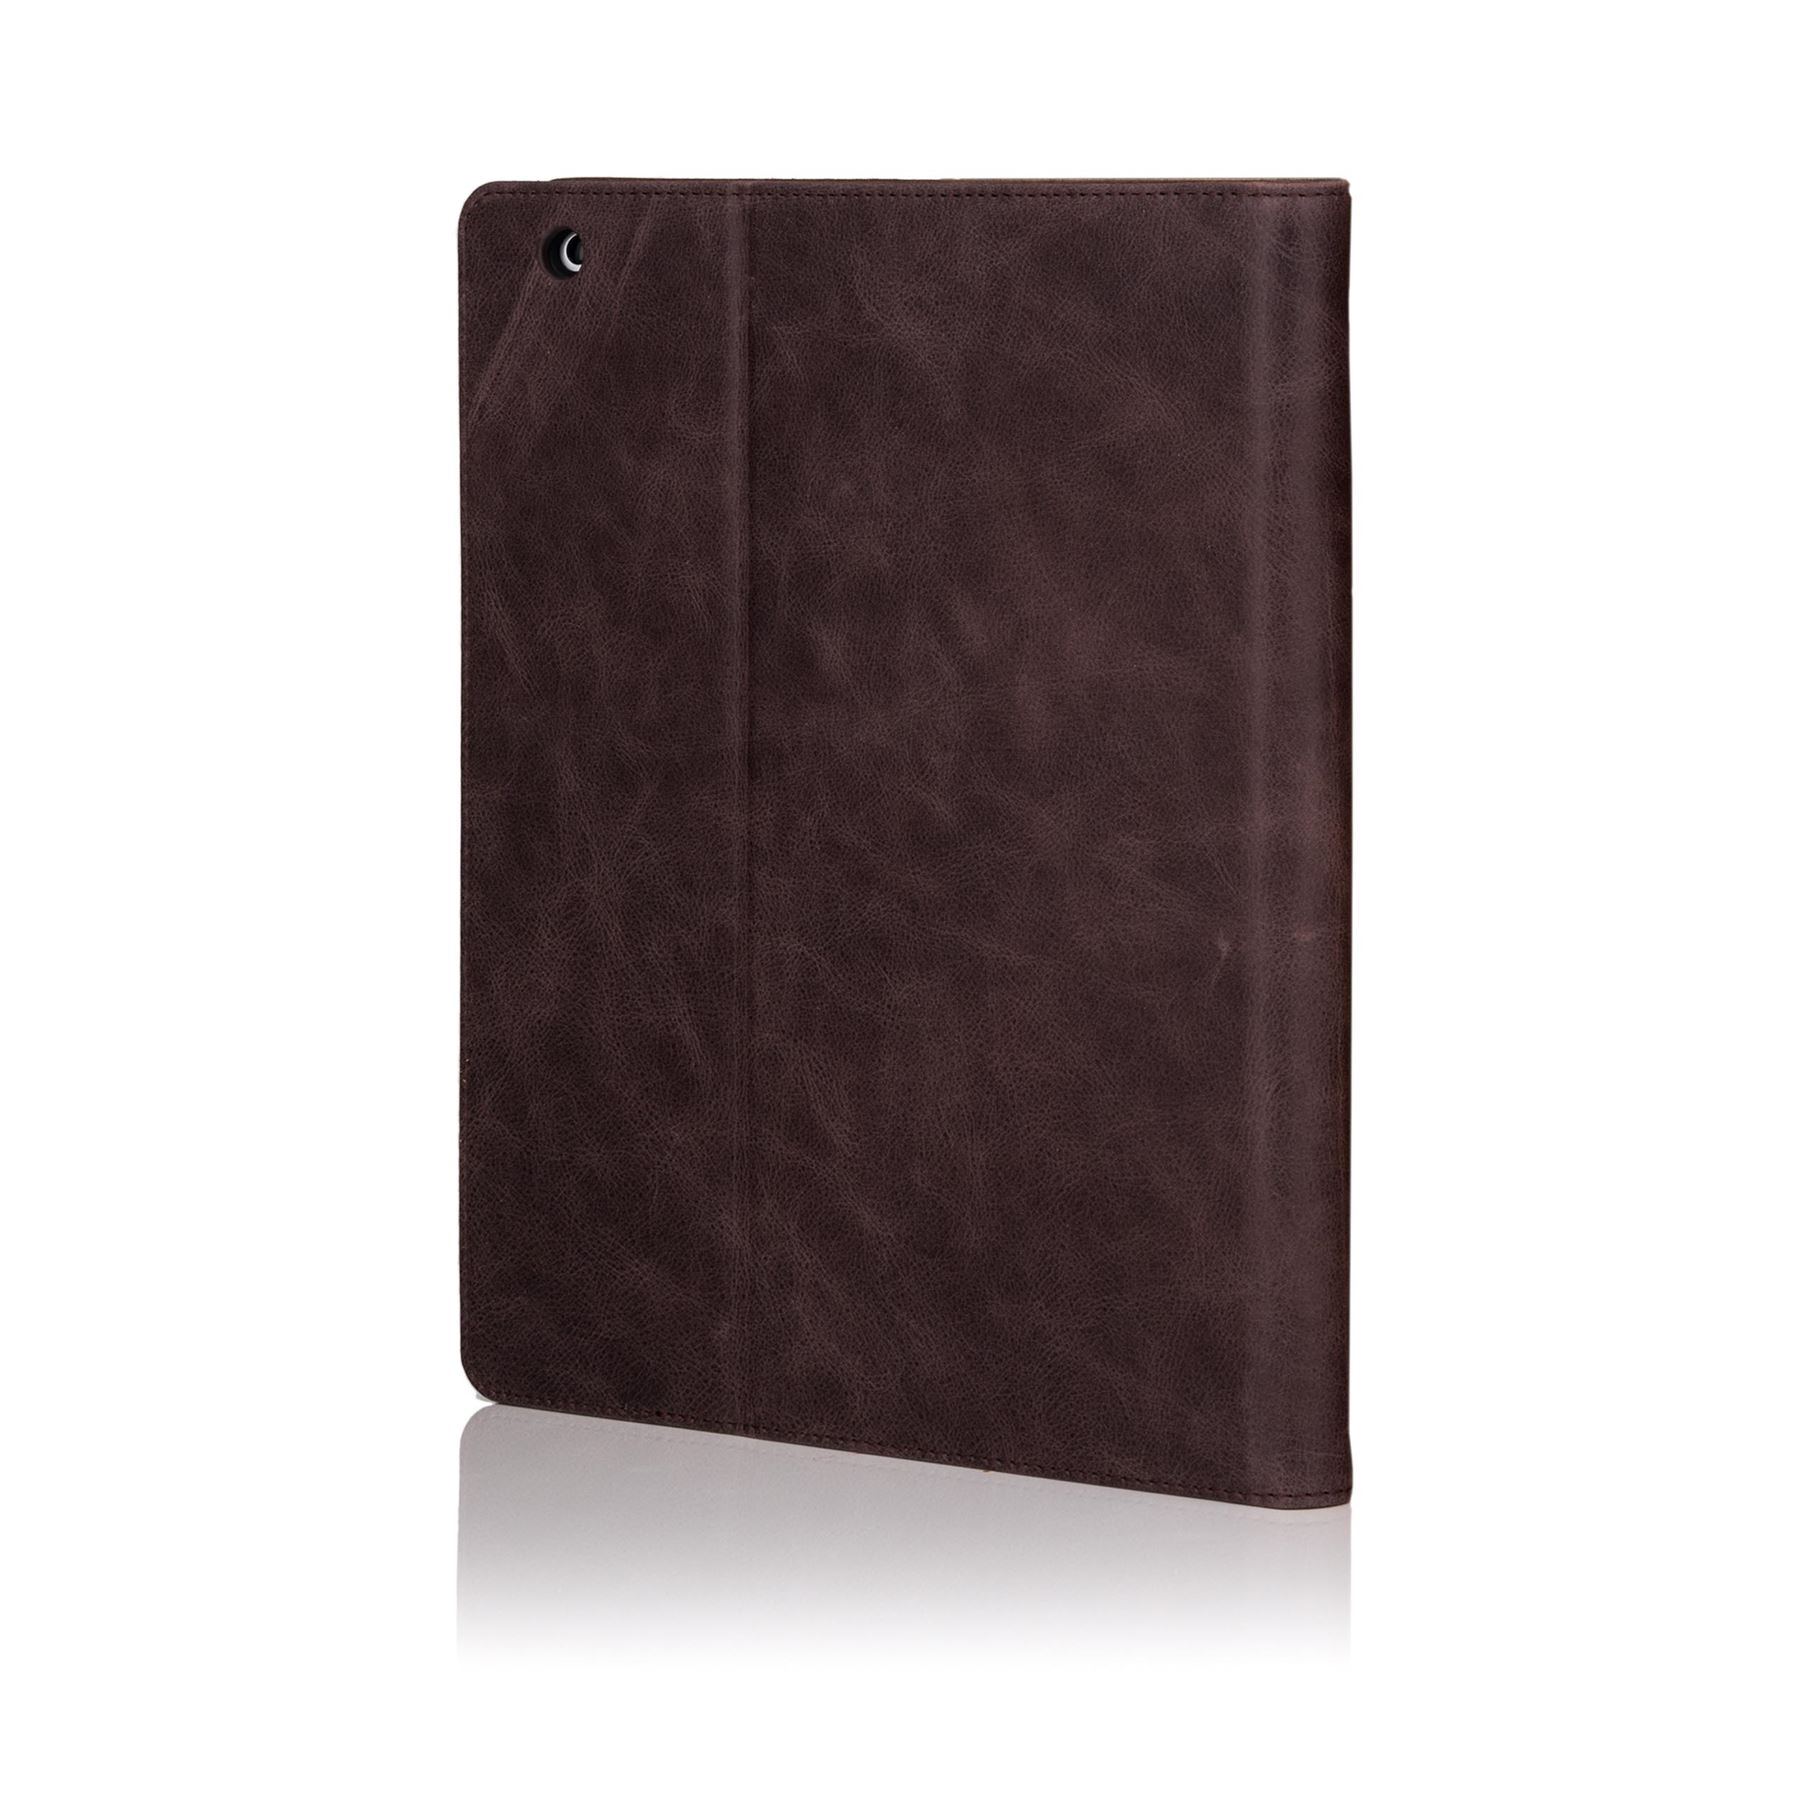 32nd-Premium-Serie-real-de-cuero-con-soporte-para-Folio-Case-Apple-Ipad-Pro-12-9-2015